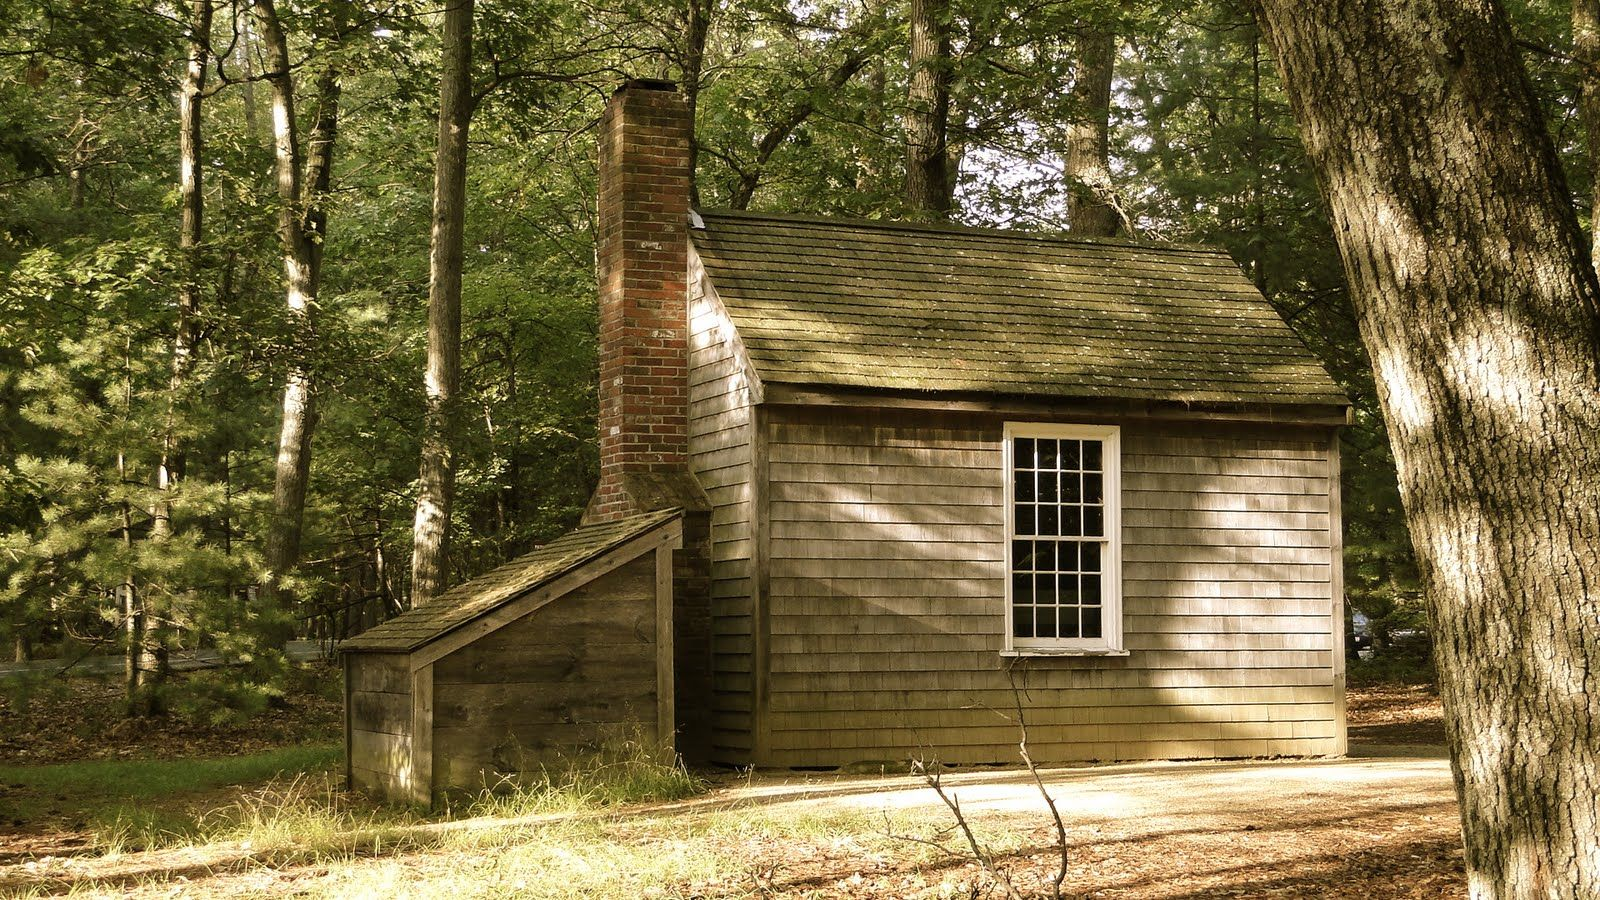 Name three characteristics that make walden by Henry David Thoreau an example of romantic escapism